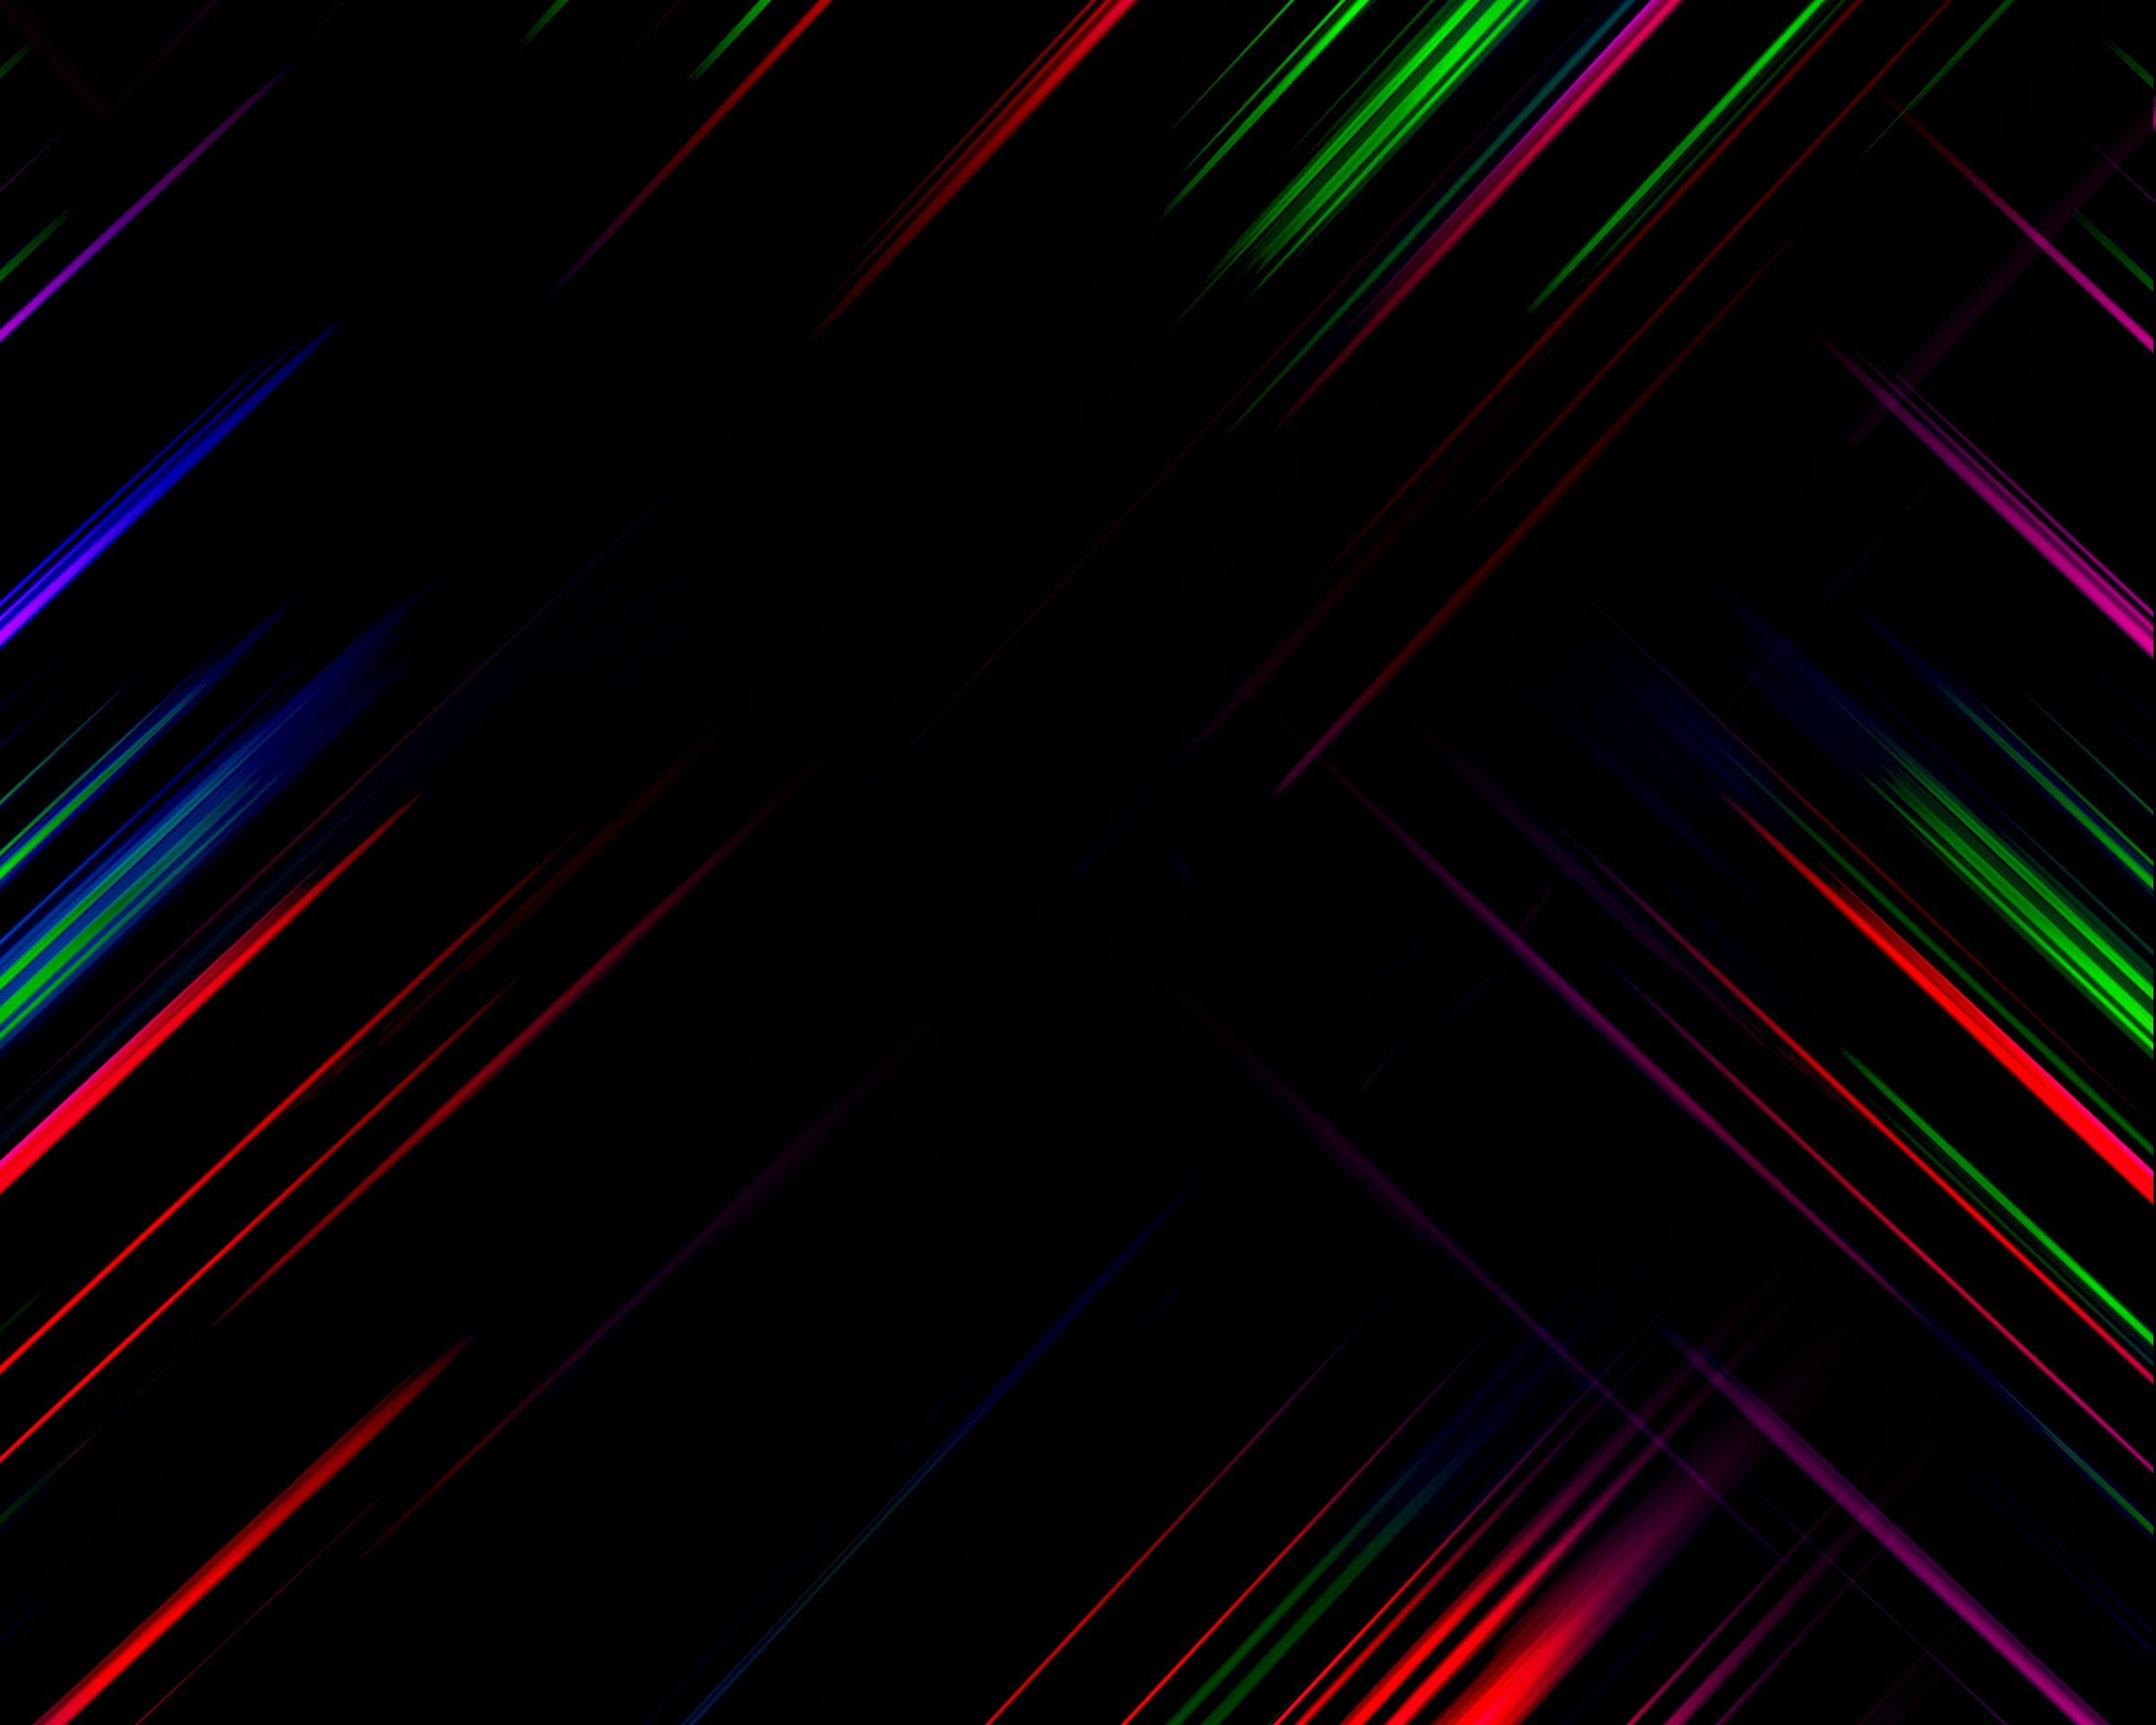 30 wallpapers perfect for AMOLED screens 2400x1920